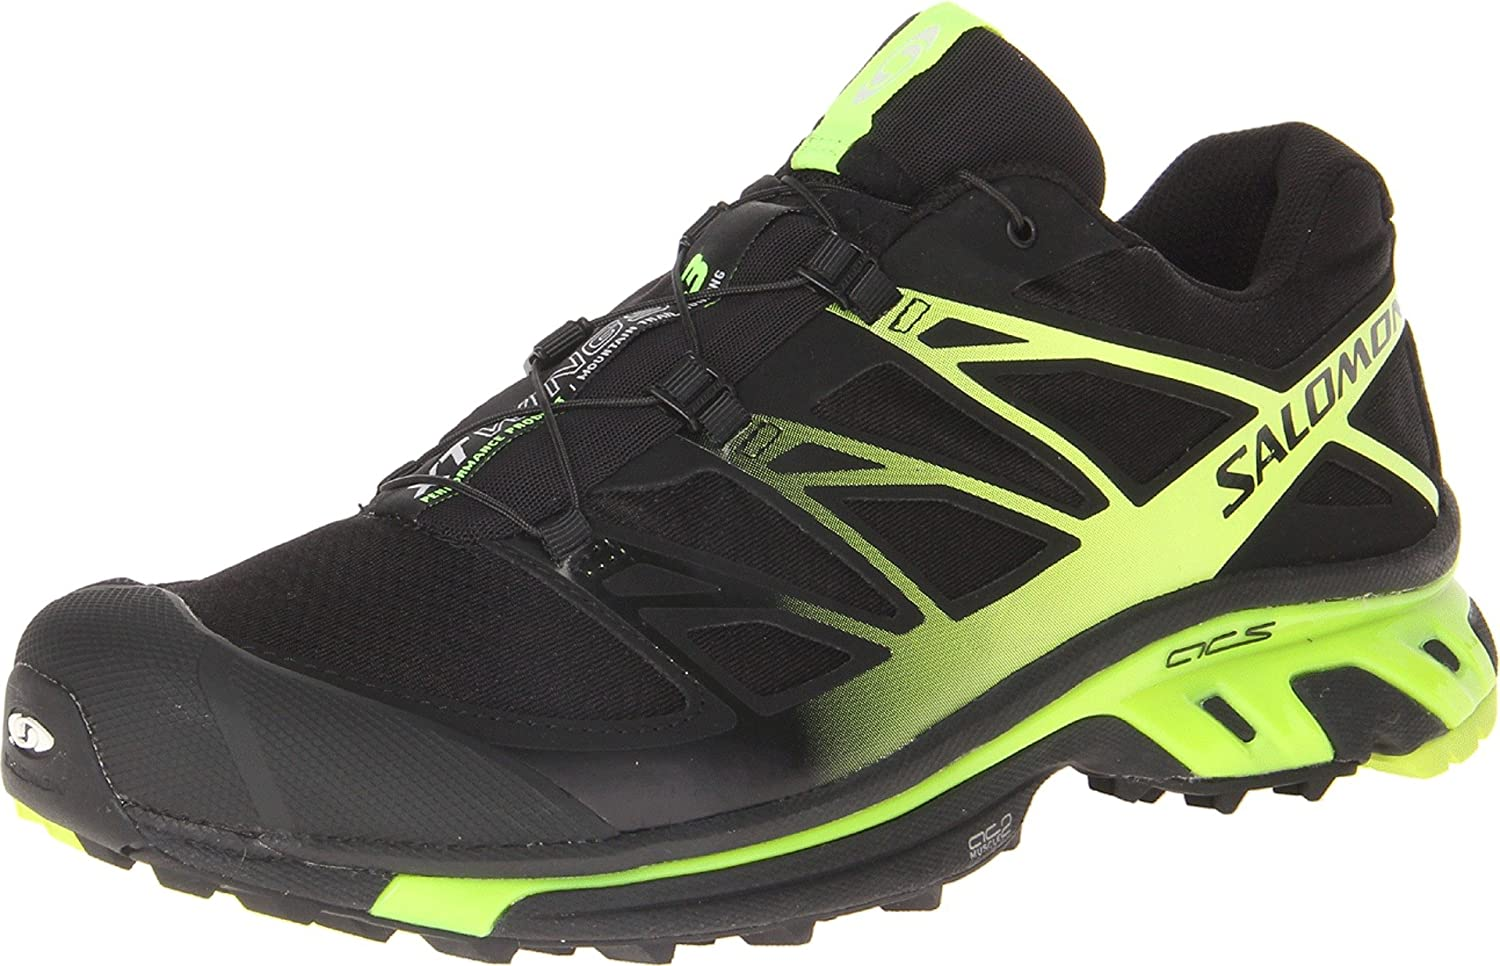 super popular c9feb bb20d Salomon XT Wings 3 Trail Running Shoes - 10  Amazon.co.uk  Shoes   Bags